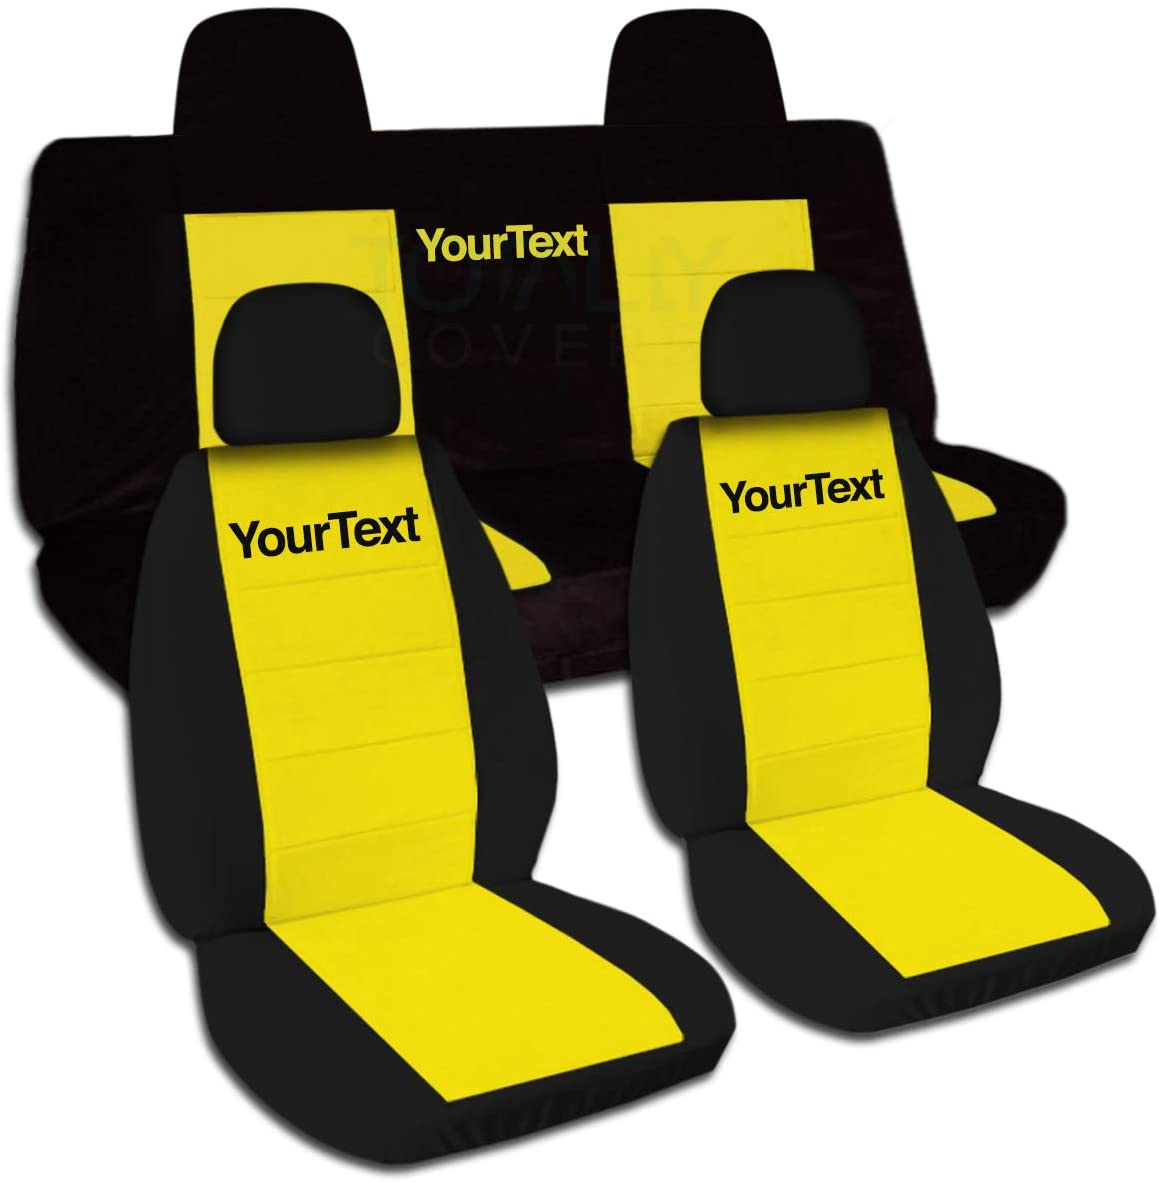 Totally Covers Compatible with 2007-2017 Jeep Compass/Patriot Two-Tone Seat Covers w Name/Text: Black & Yellow - Full Set Front Buckets & Split Rear Bench